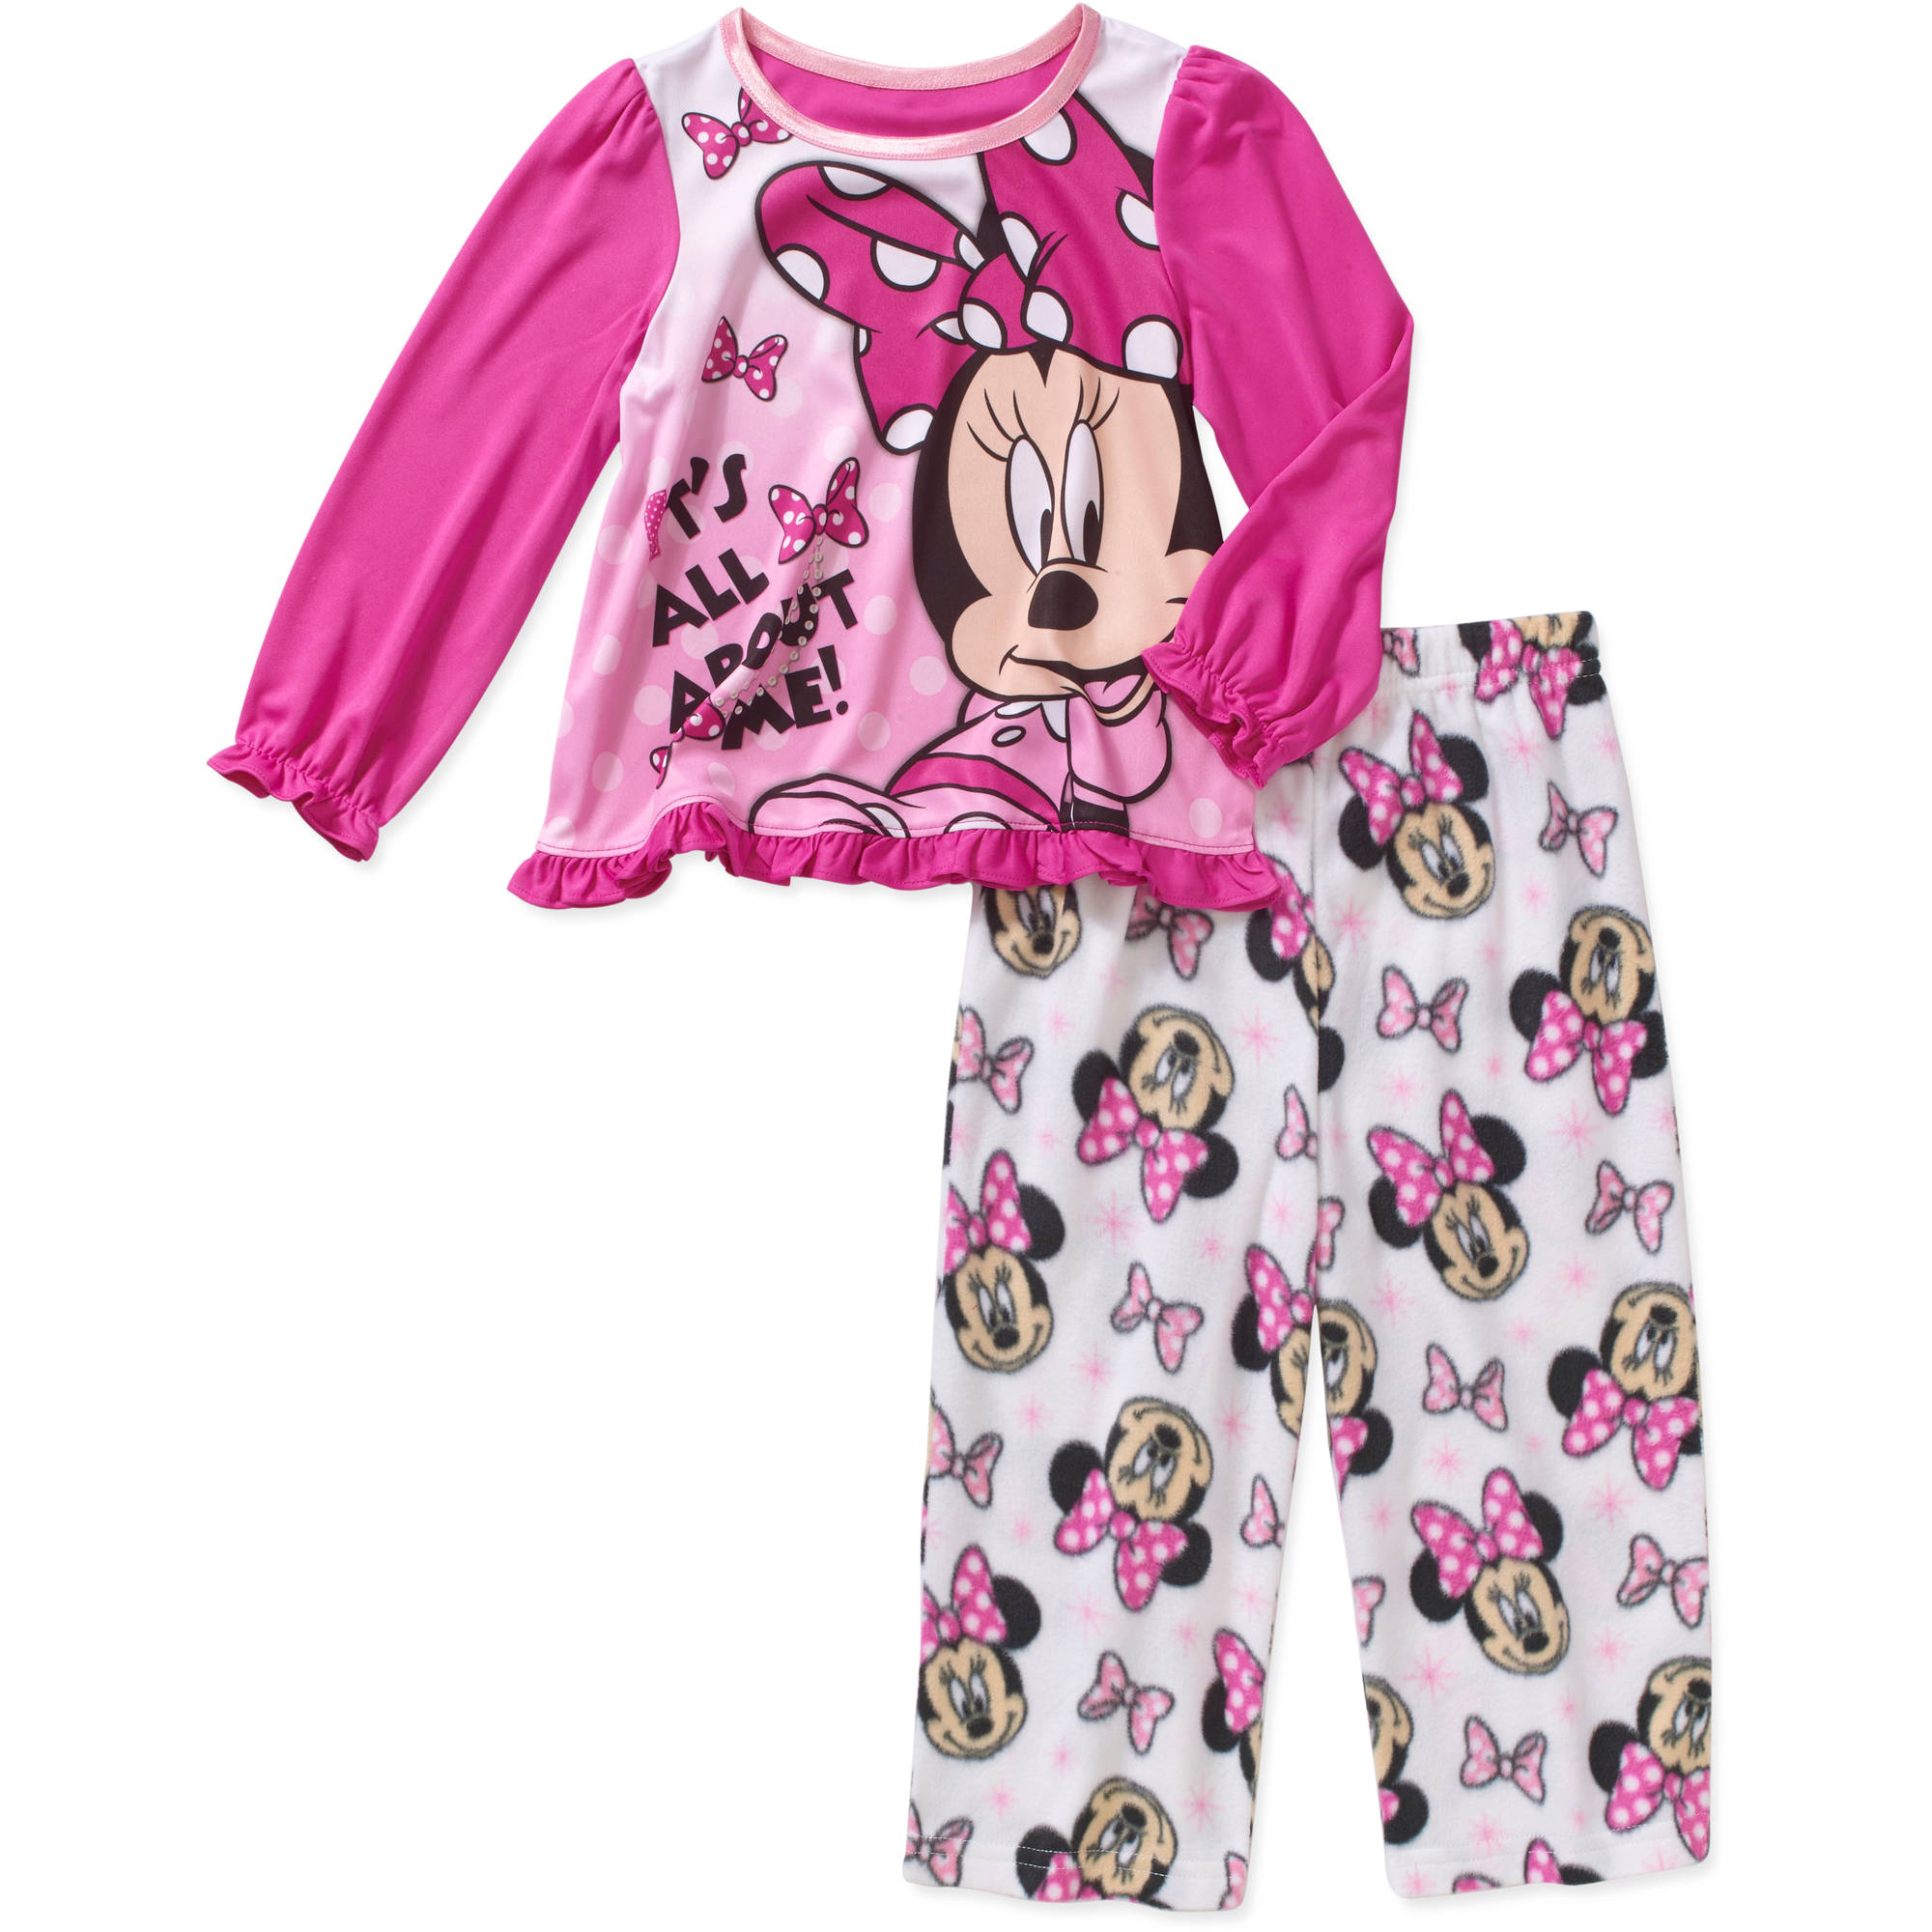 Minnie Mouse Toddler Girl Long Sleeve Top with Fleece Pants Pajama 2pc Set